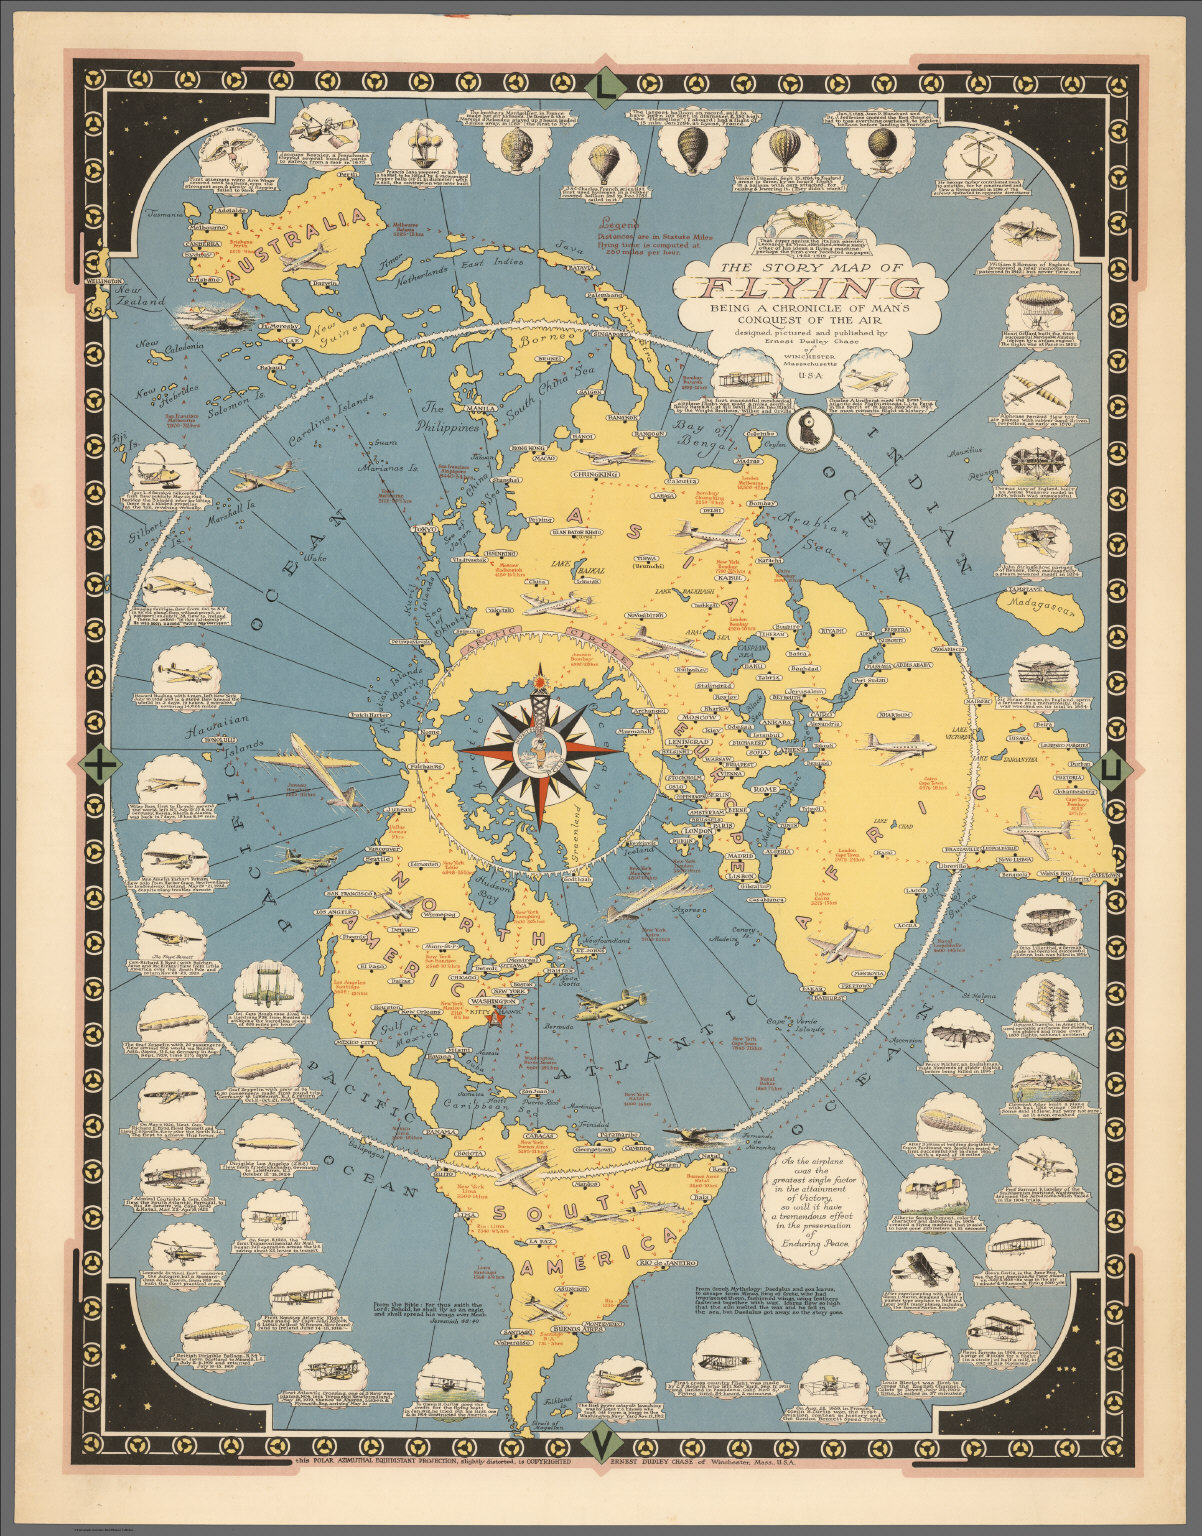 The story map of flying : Being a chronicle of man's conquest of the air